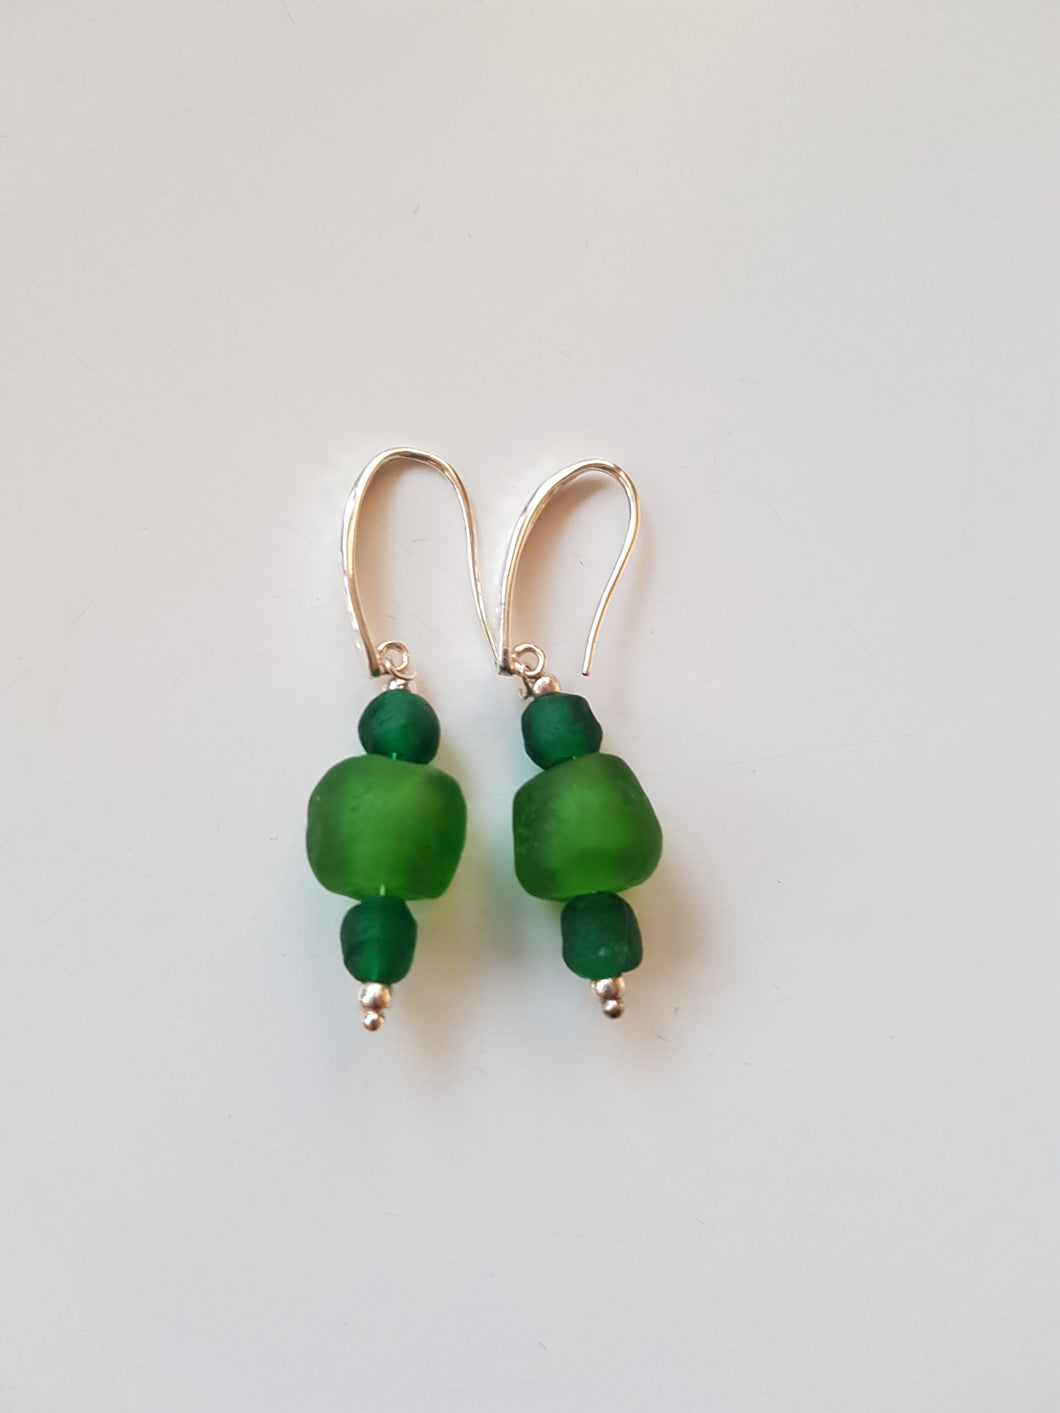 Silver earrings. Recycled glass beads from Ghana.